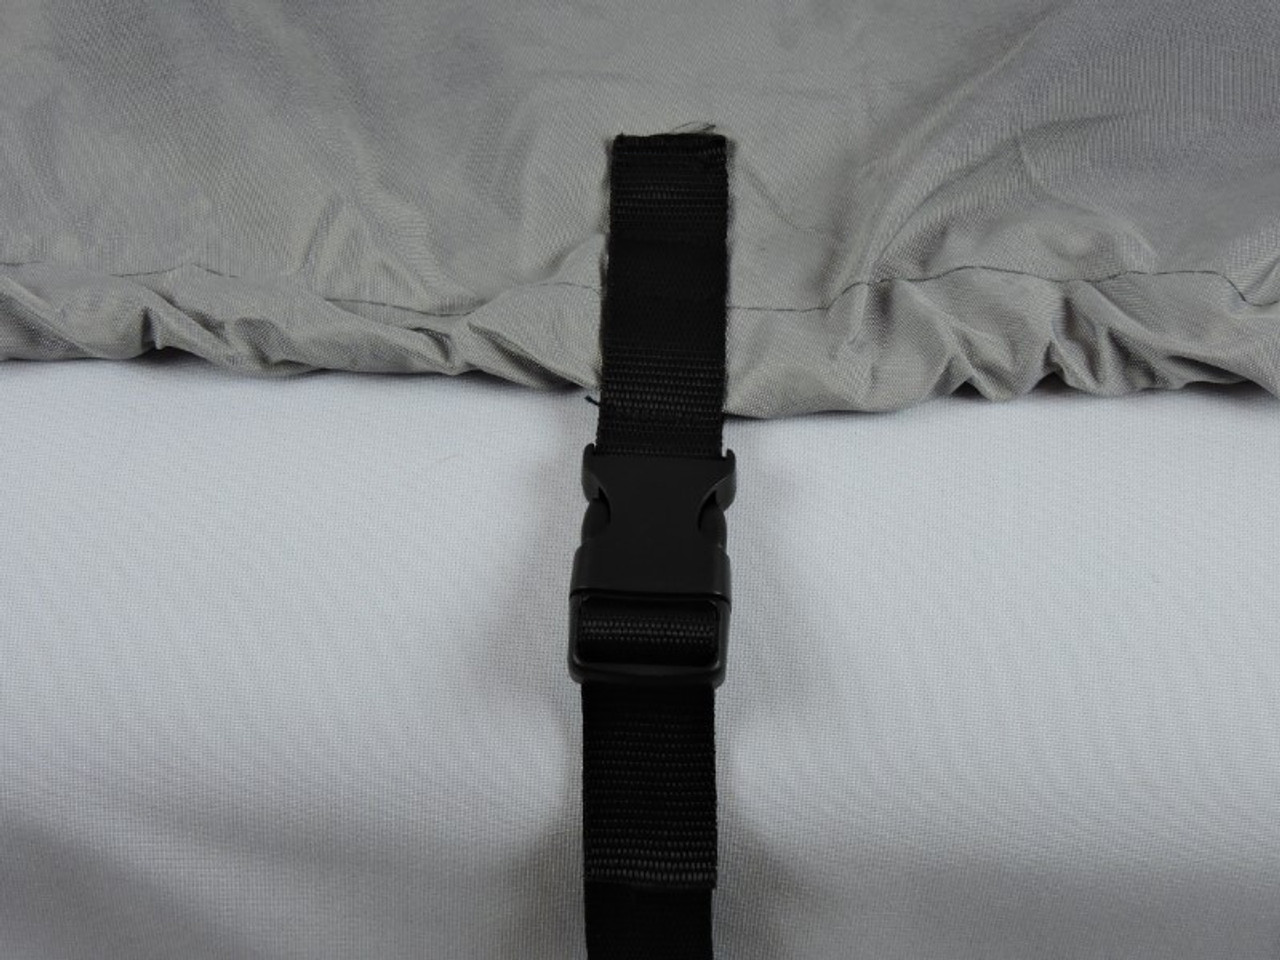 Venture all season storage cover side tie down straps